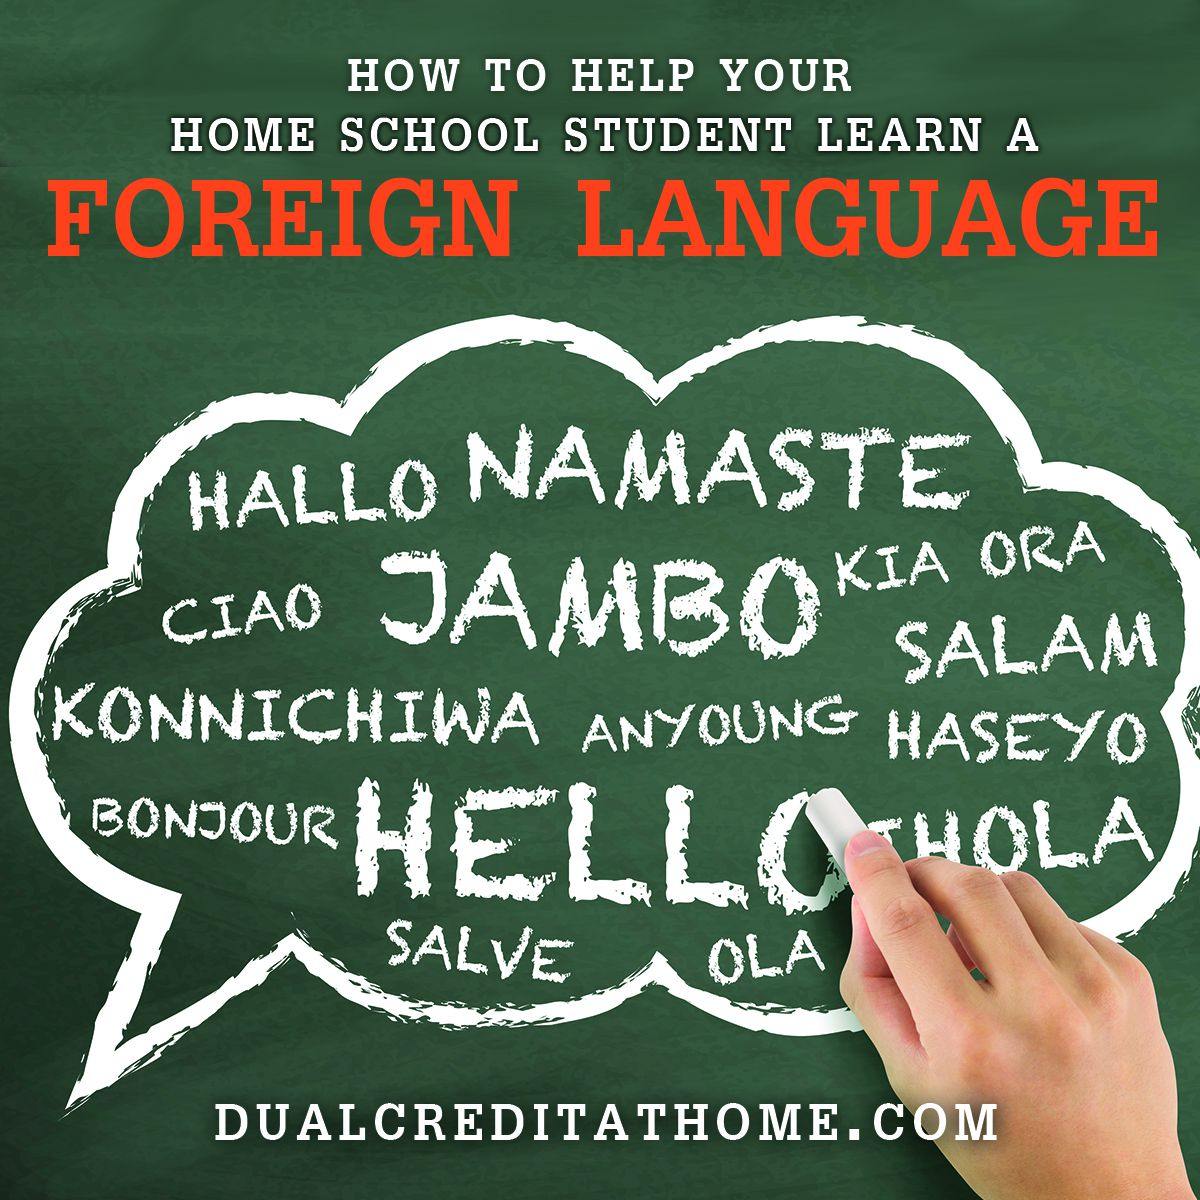 How to Help Your Home School Student Learn a New Language This Semester